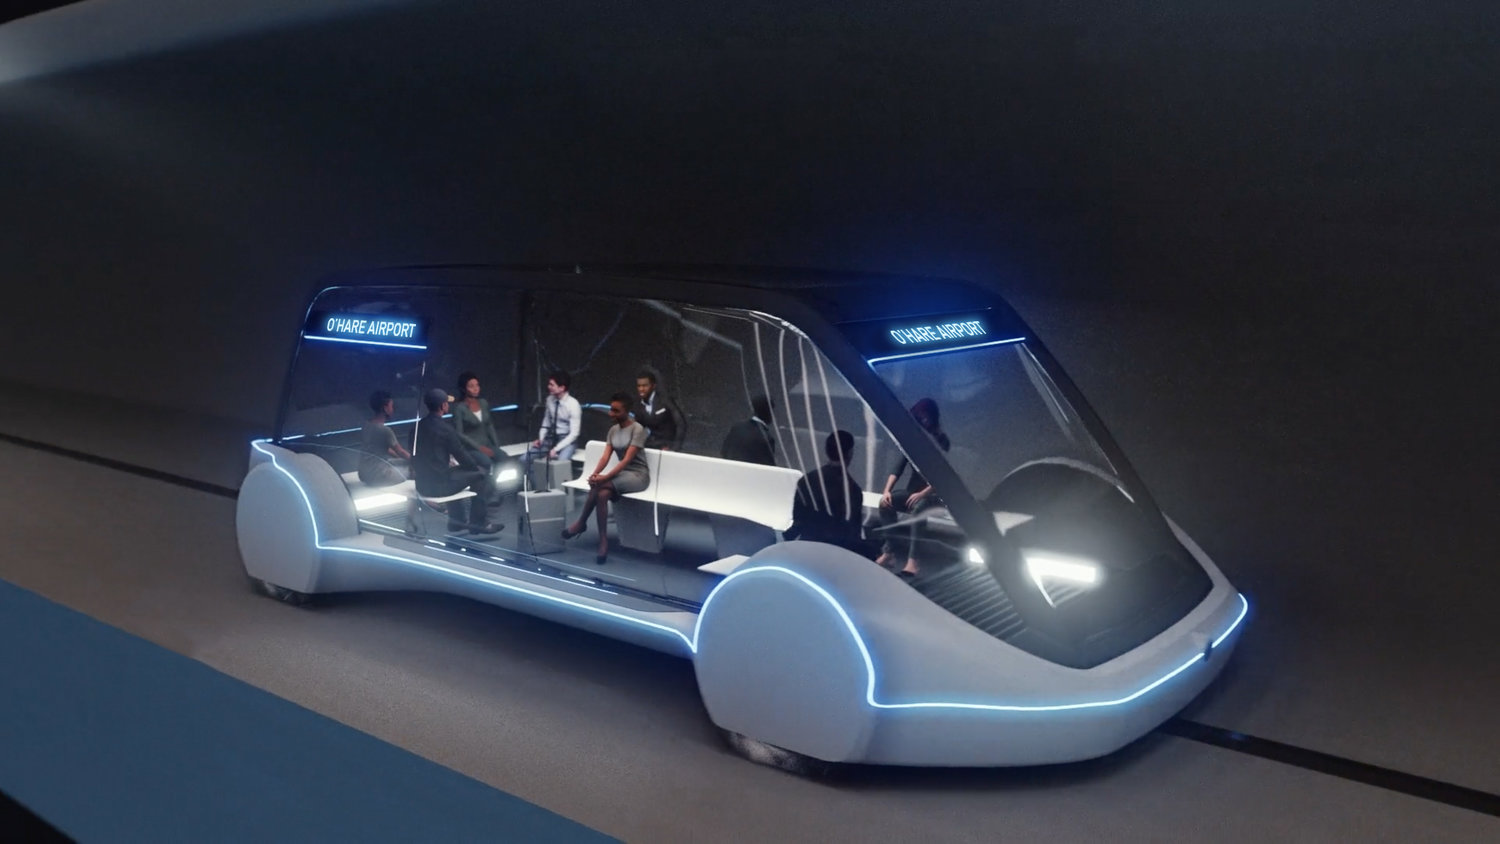 Chicago Express Loop The Boring Company Fahrzeuge Schlitten Skids